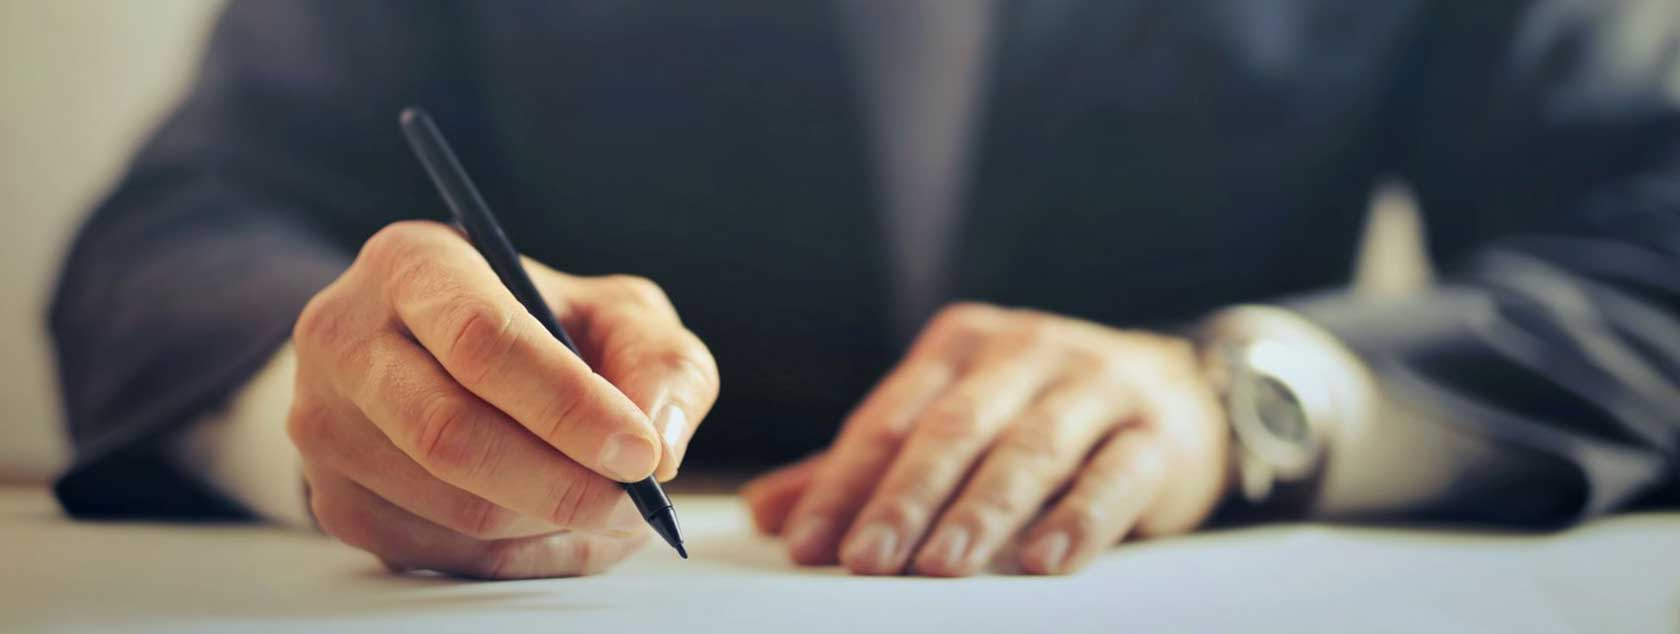 hands-of-a-man-writing-with-pen-sitting-at-desk